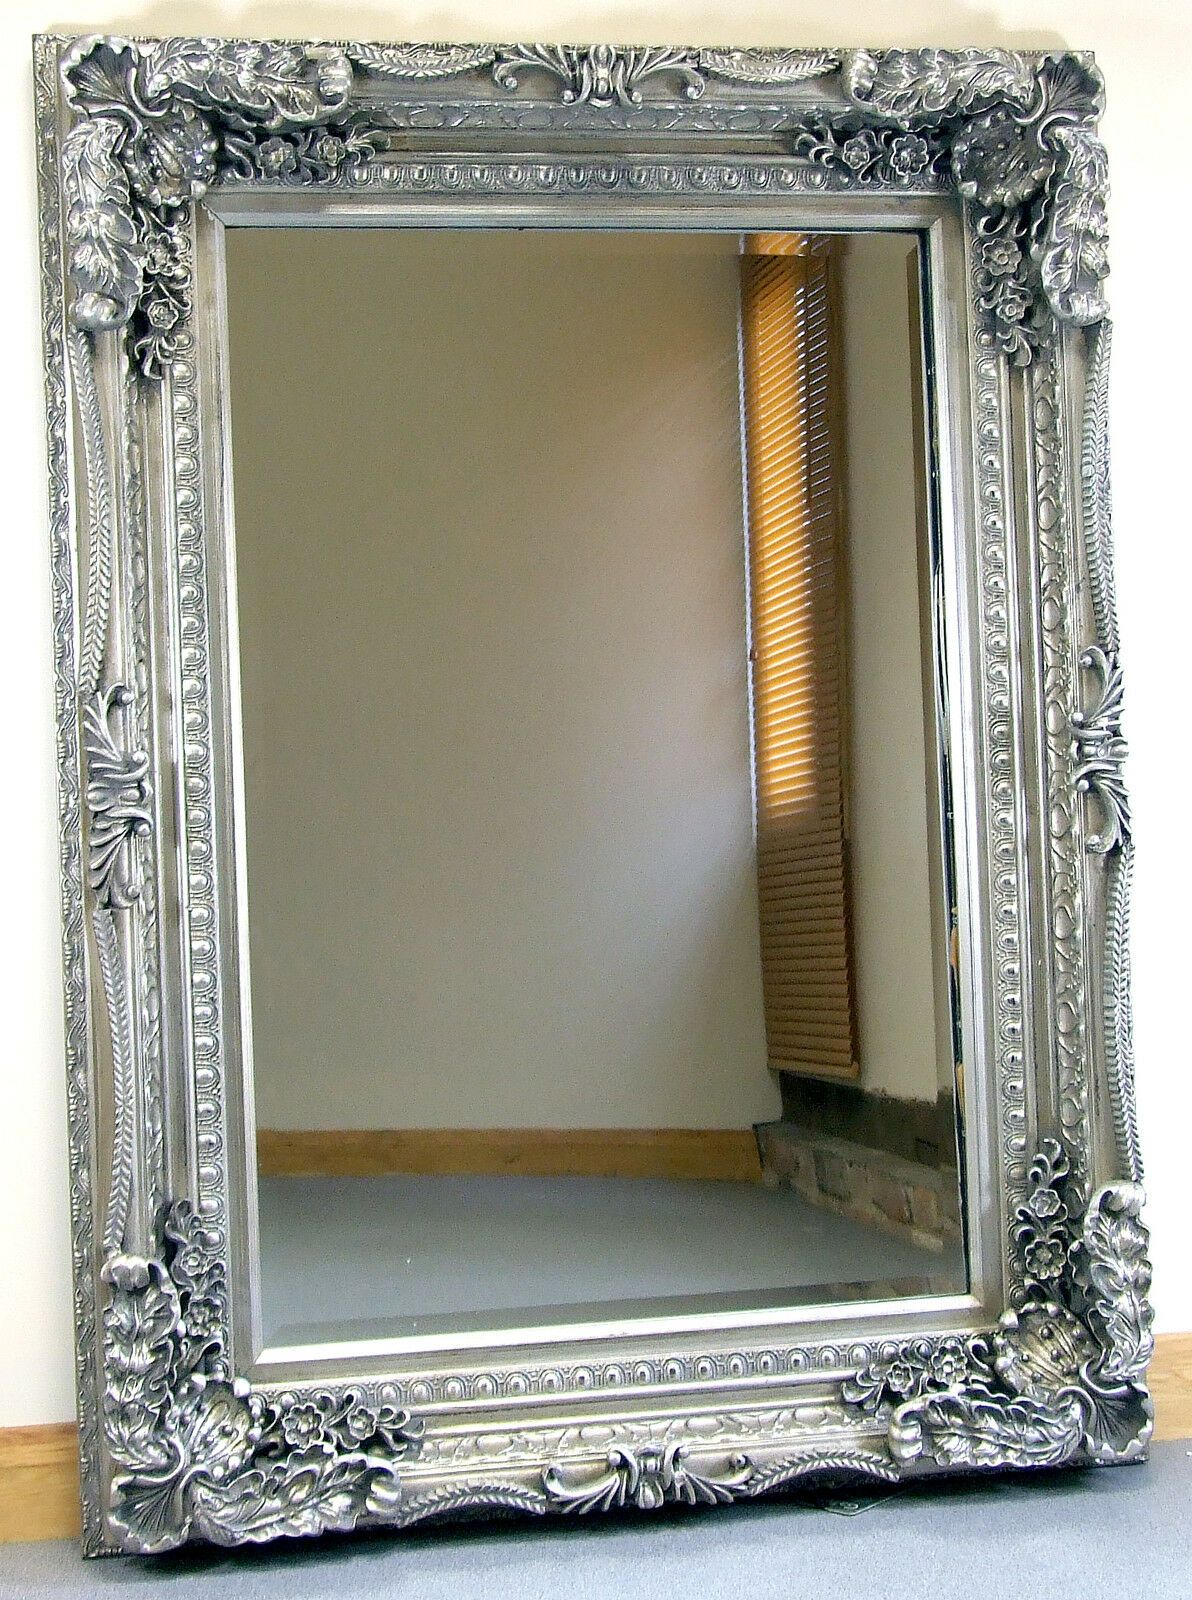 Details About Louis X Large Rectangle Ornate Wall Mirror Silver